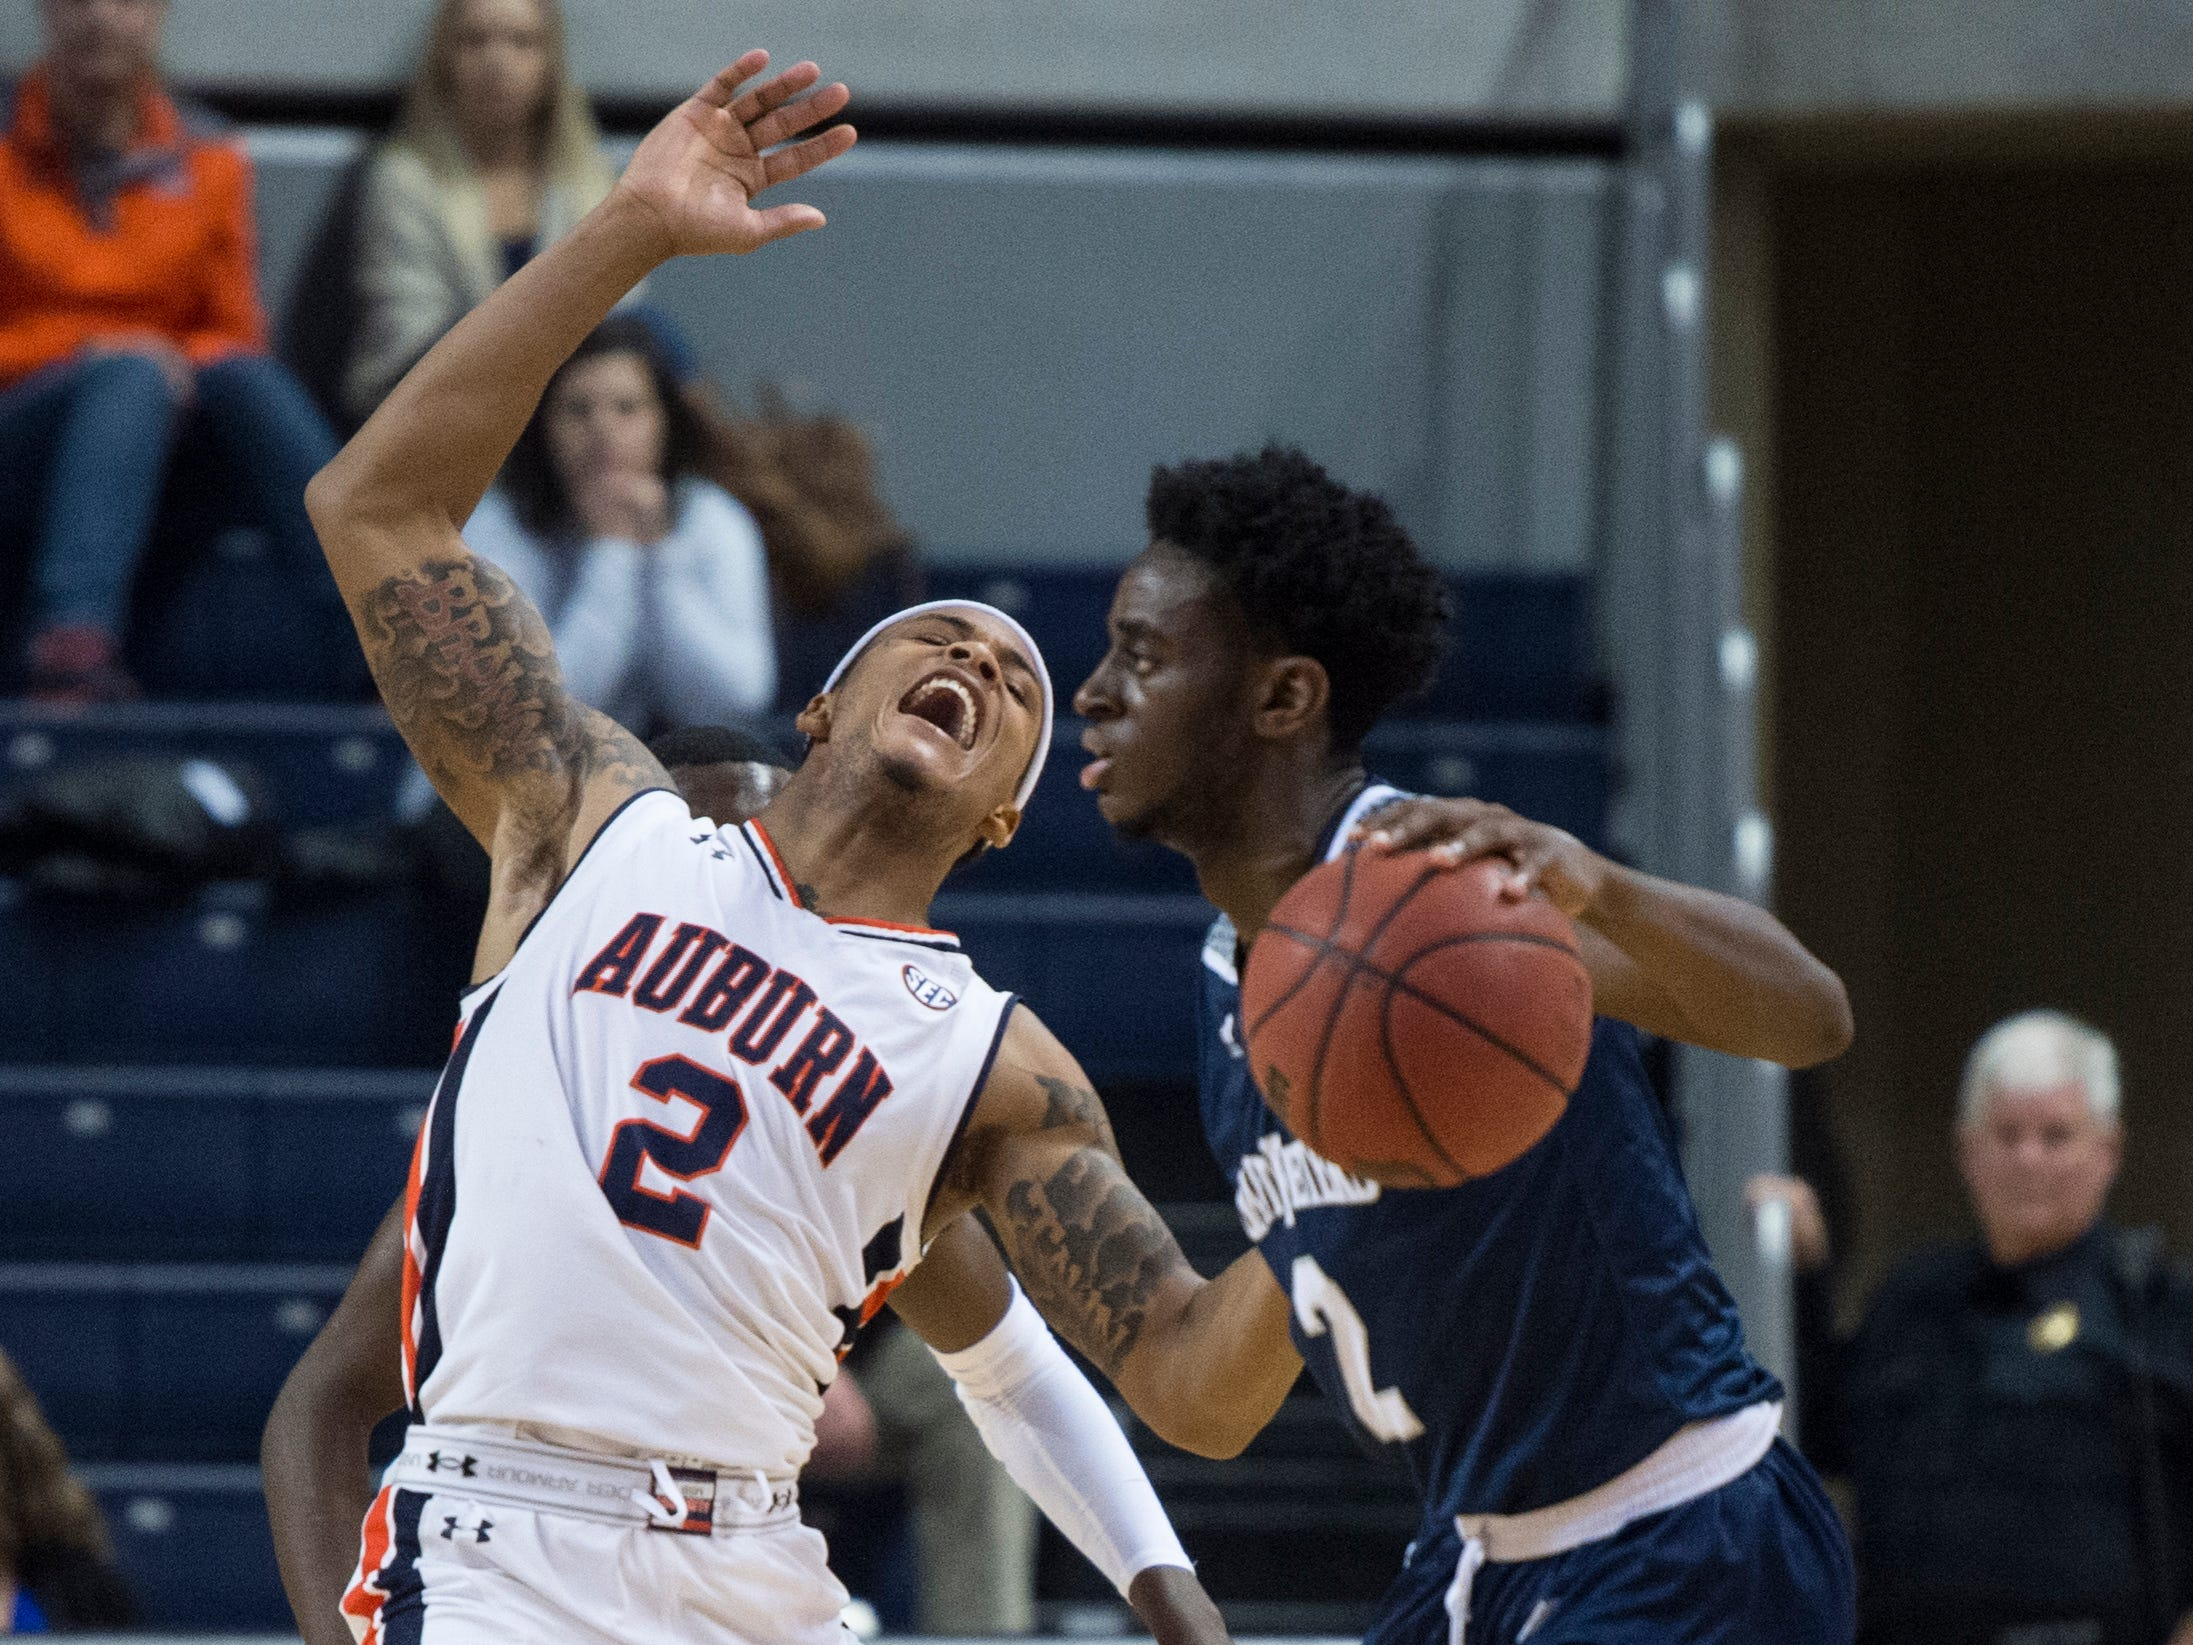 Auburn guard Bryce Brown (2) reacts to a shove off by Saint Peter's guard Klay Brown (2) at Auburn Arena in Auburn, Ala., on Wednesday, Nov. 28, 2018. Auburn defeated Saint Peter's 99-49.